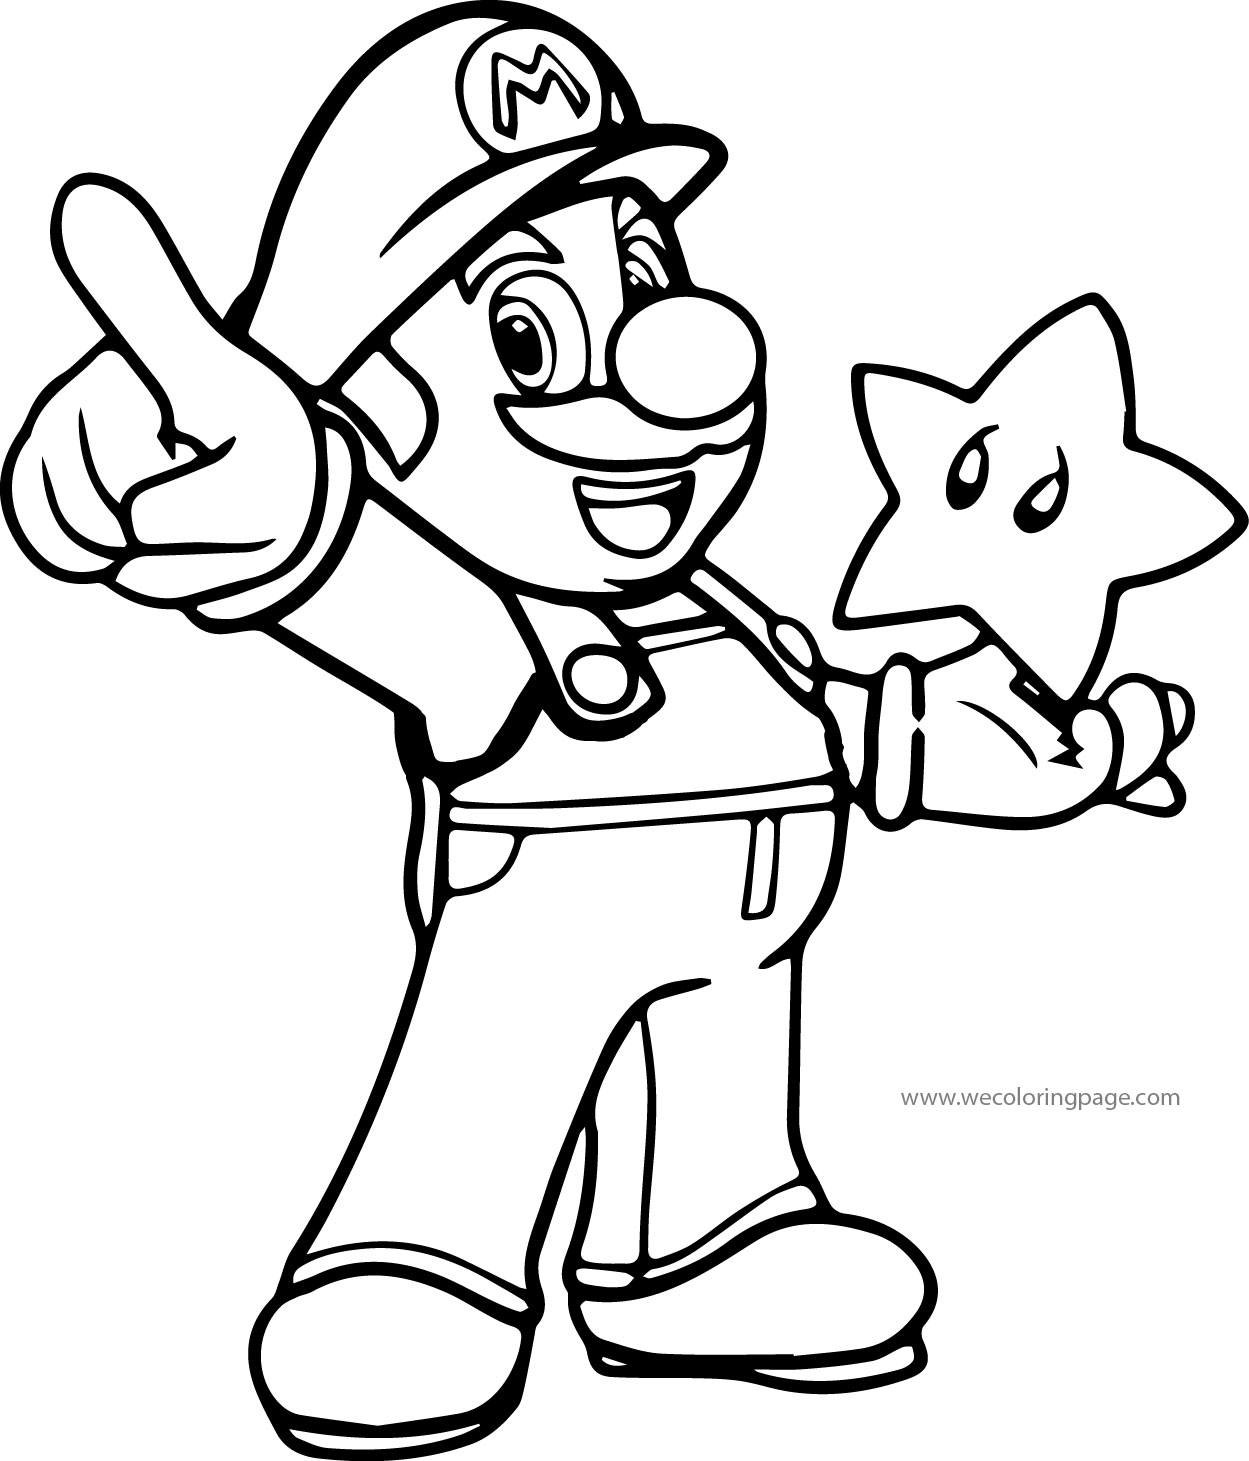 mario coloring pages -